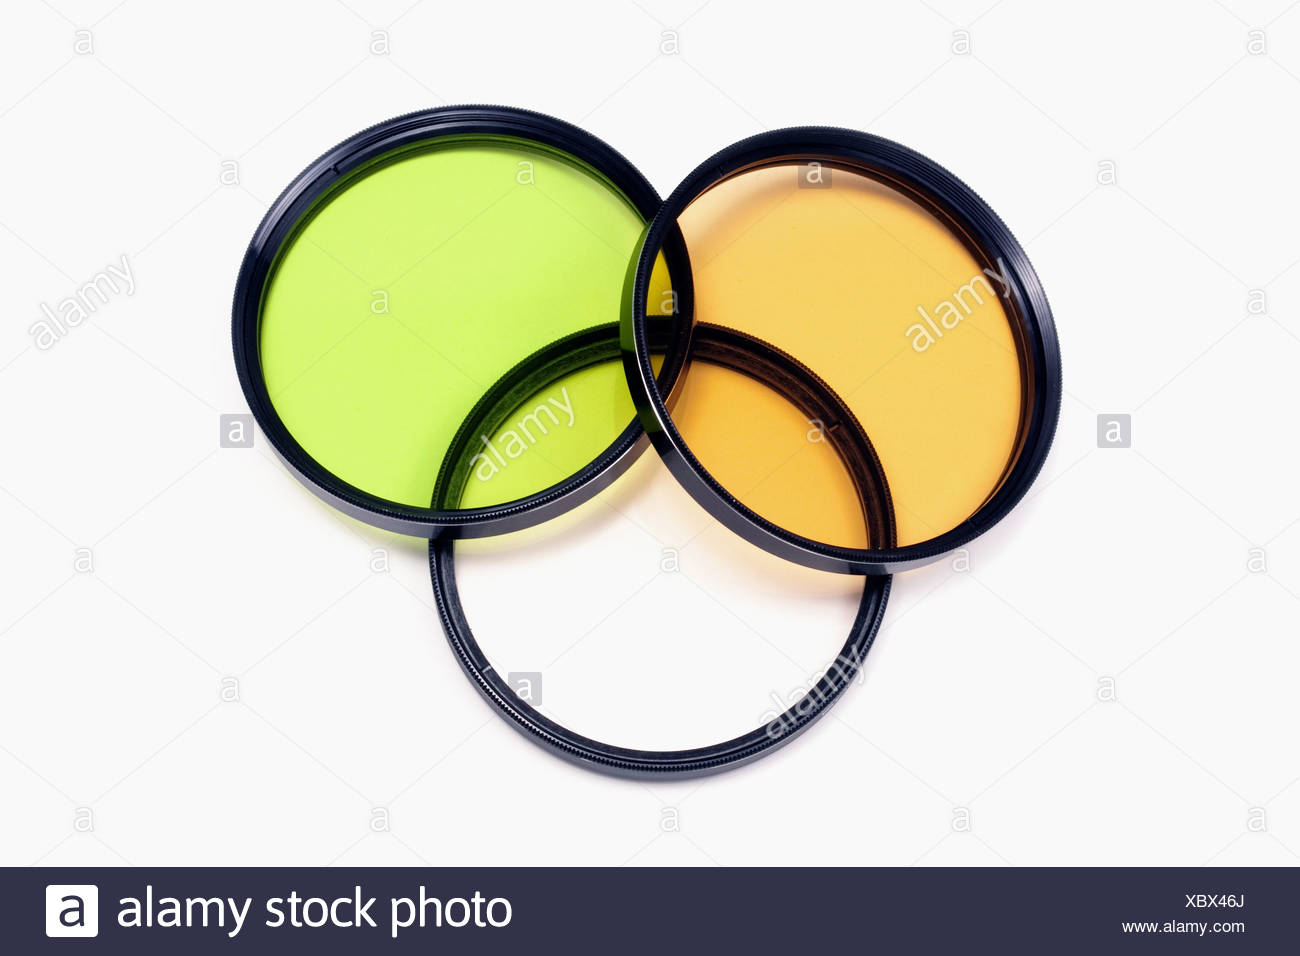 Photo filters - Stock Image